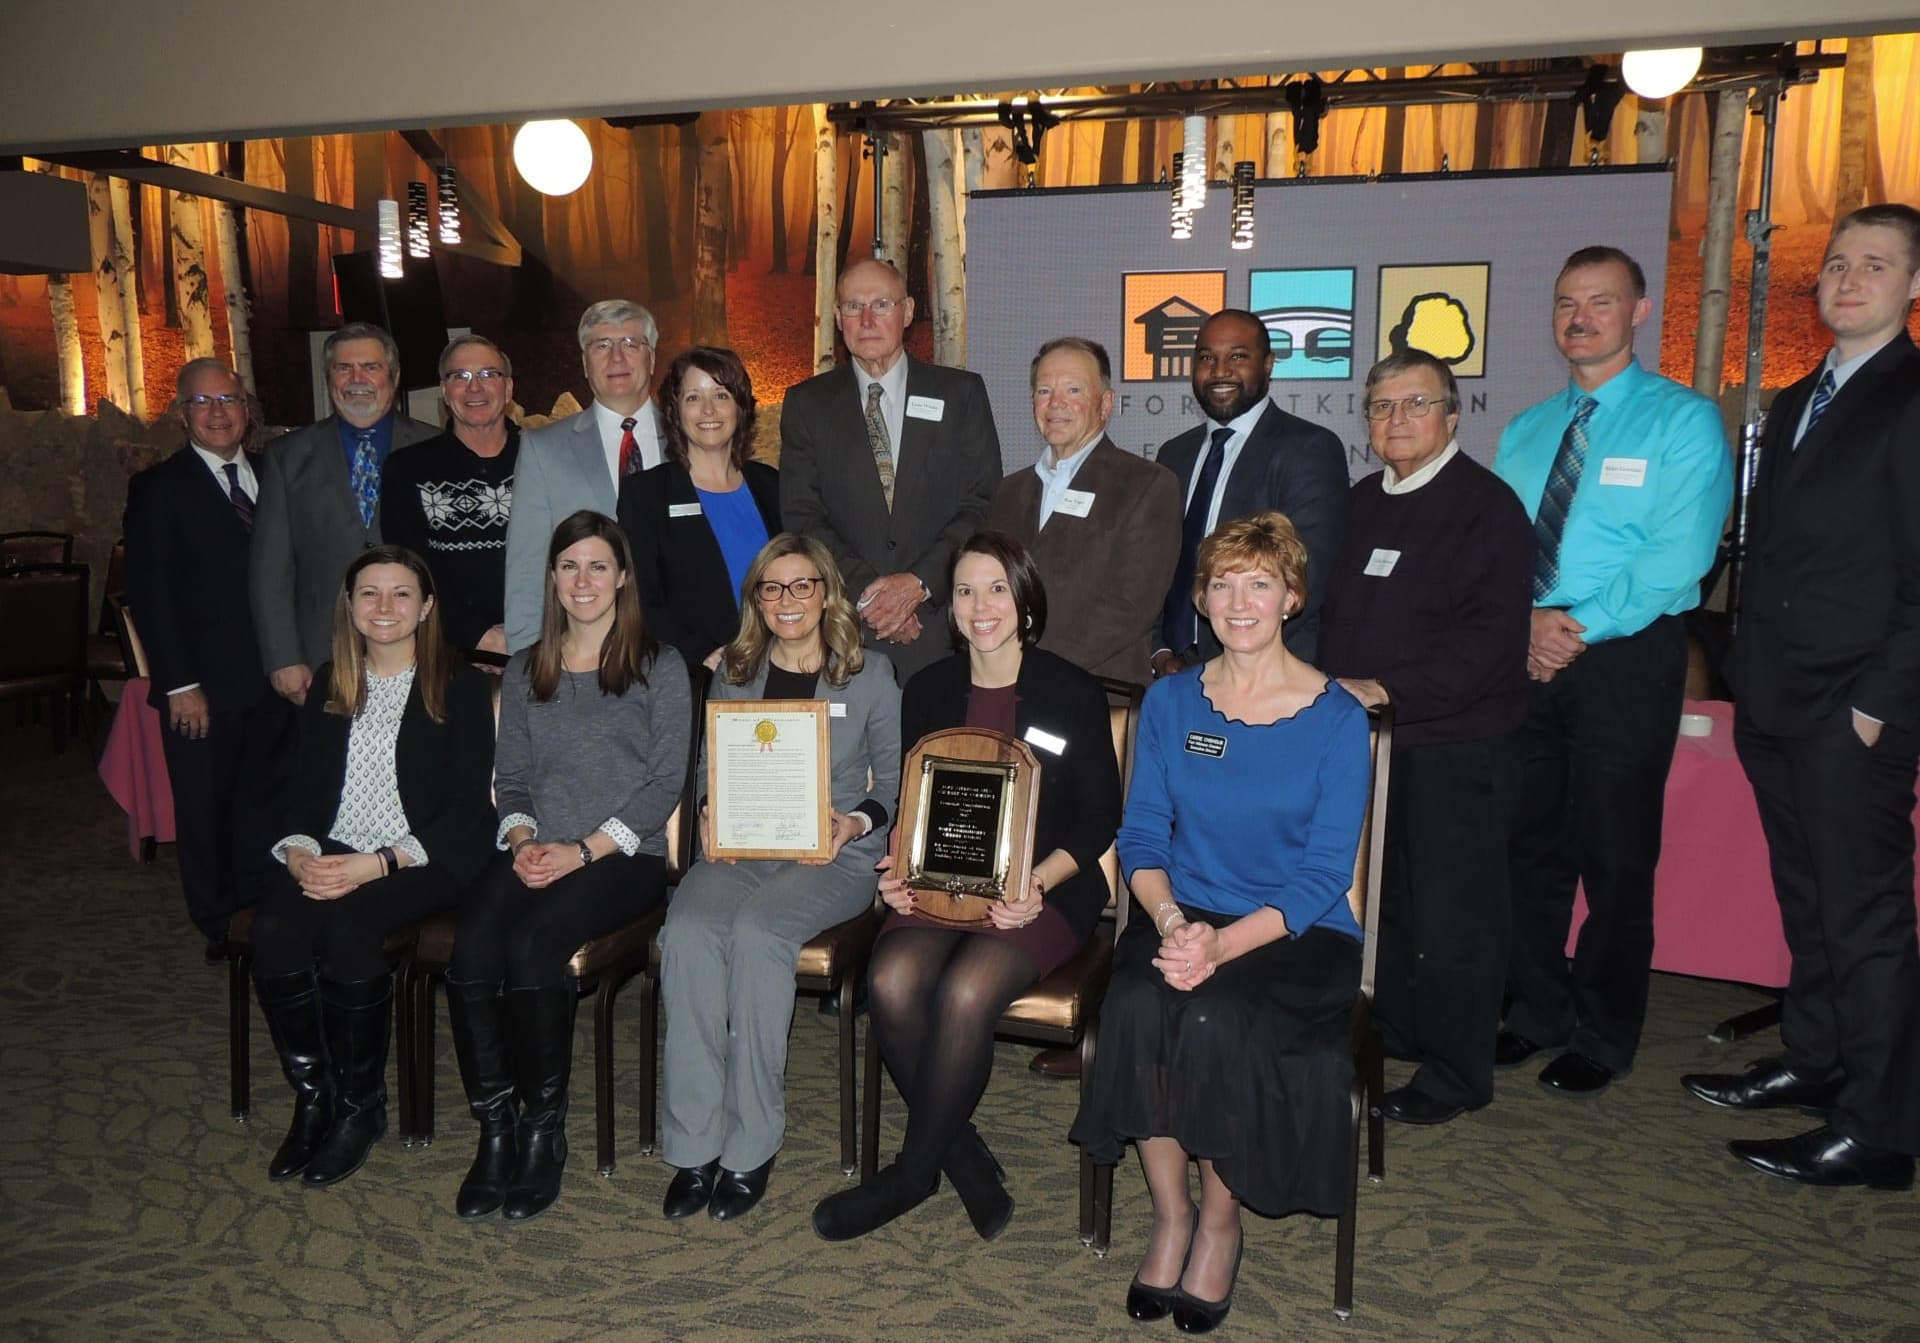 2018 Economic Contribution Award Winner: Fort Community Credit Union team members join in recognition.